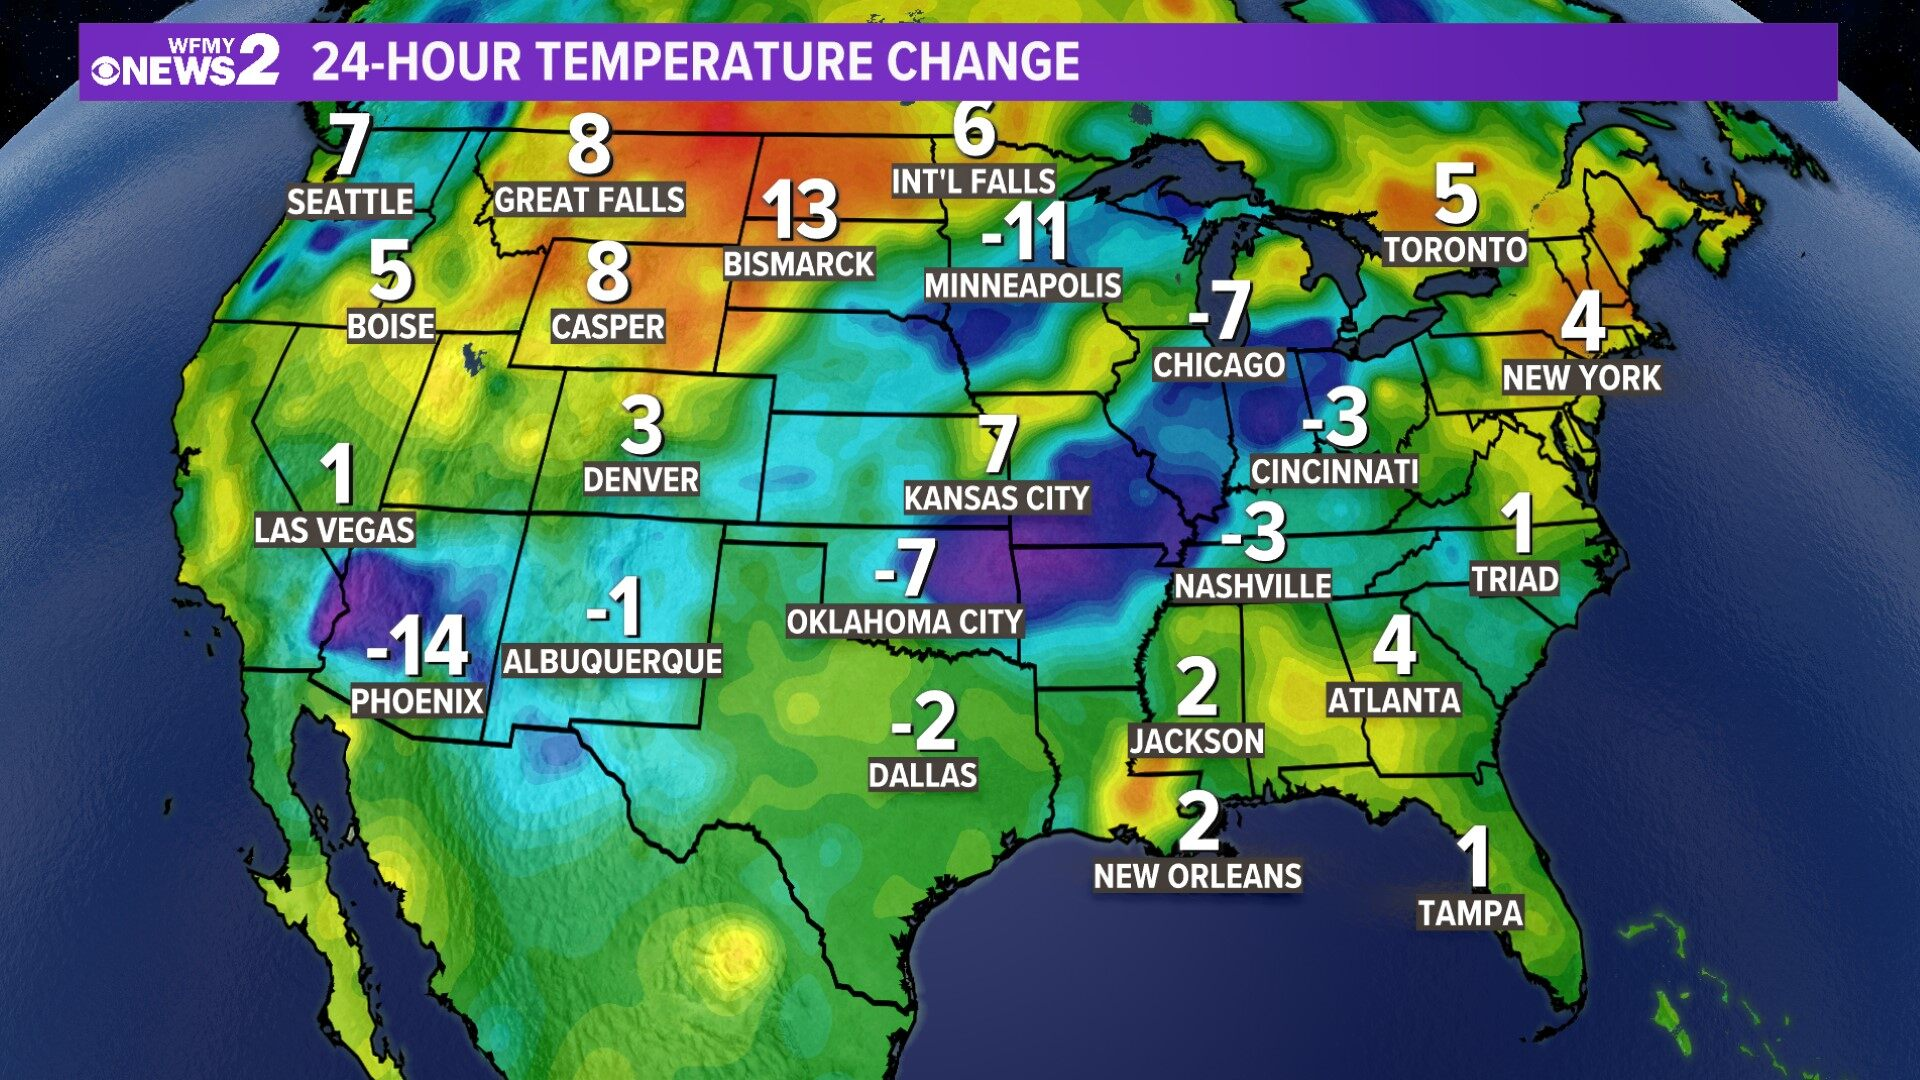 National 24-hour Temp Change